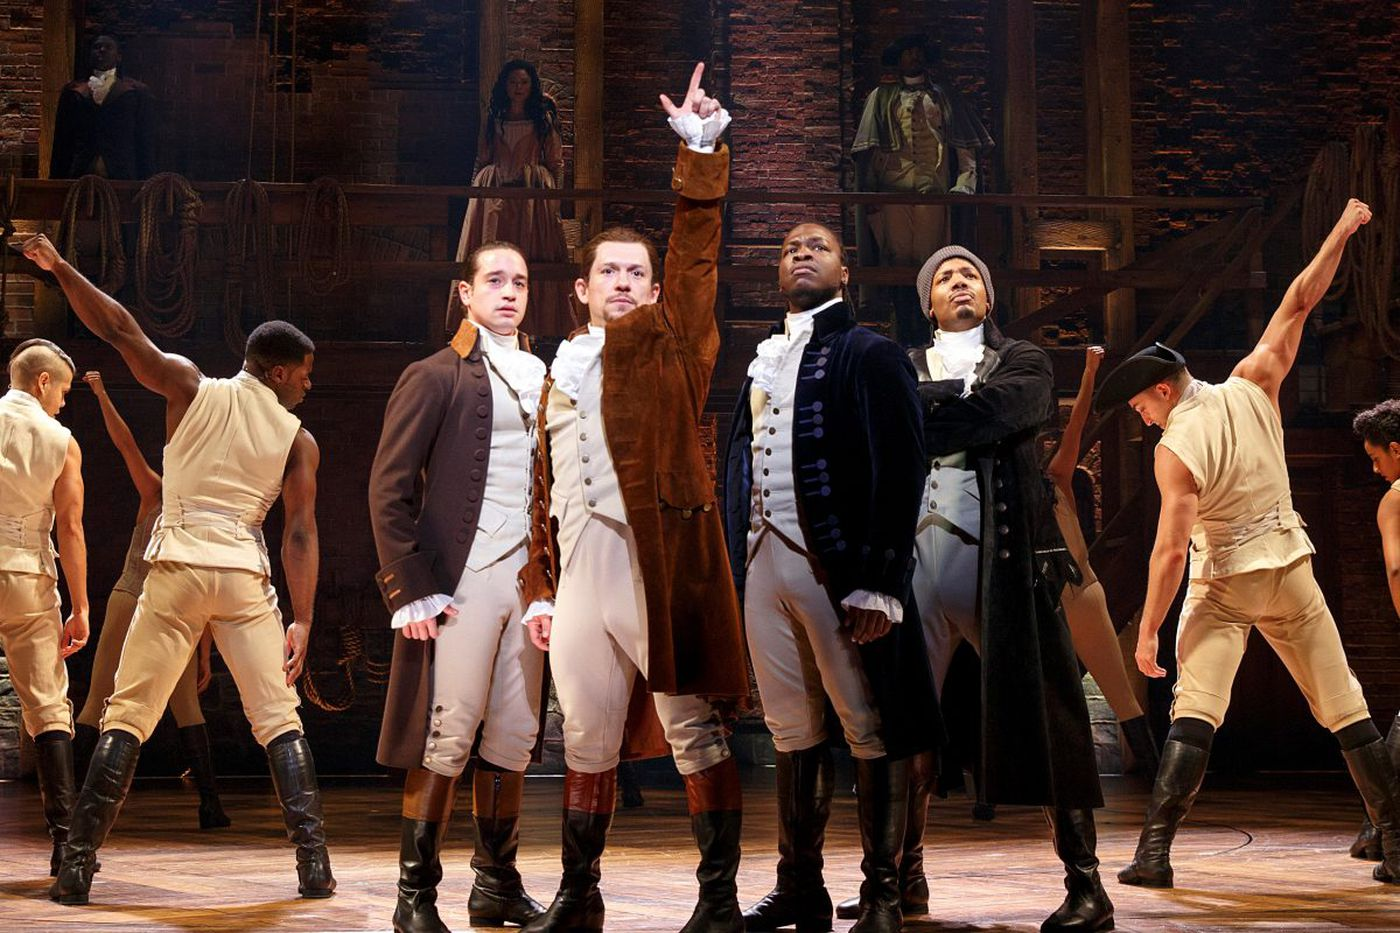 'Hamilton' is coming to Philadelphia in August 2019: ticket packages on sale now